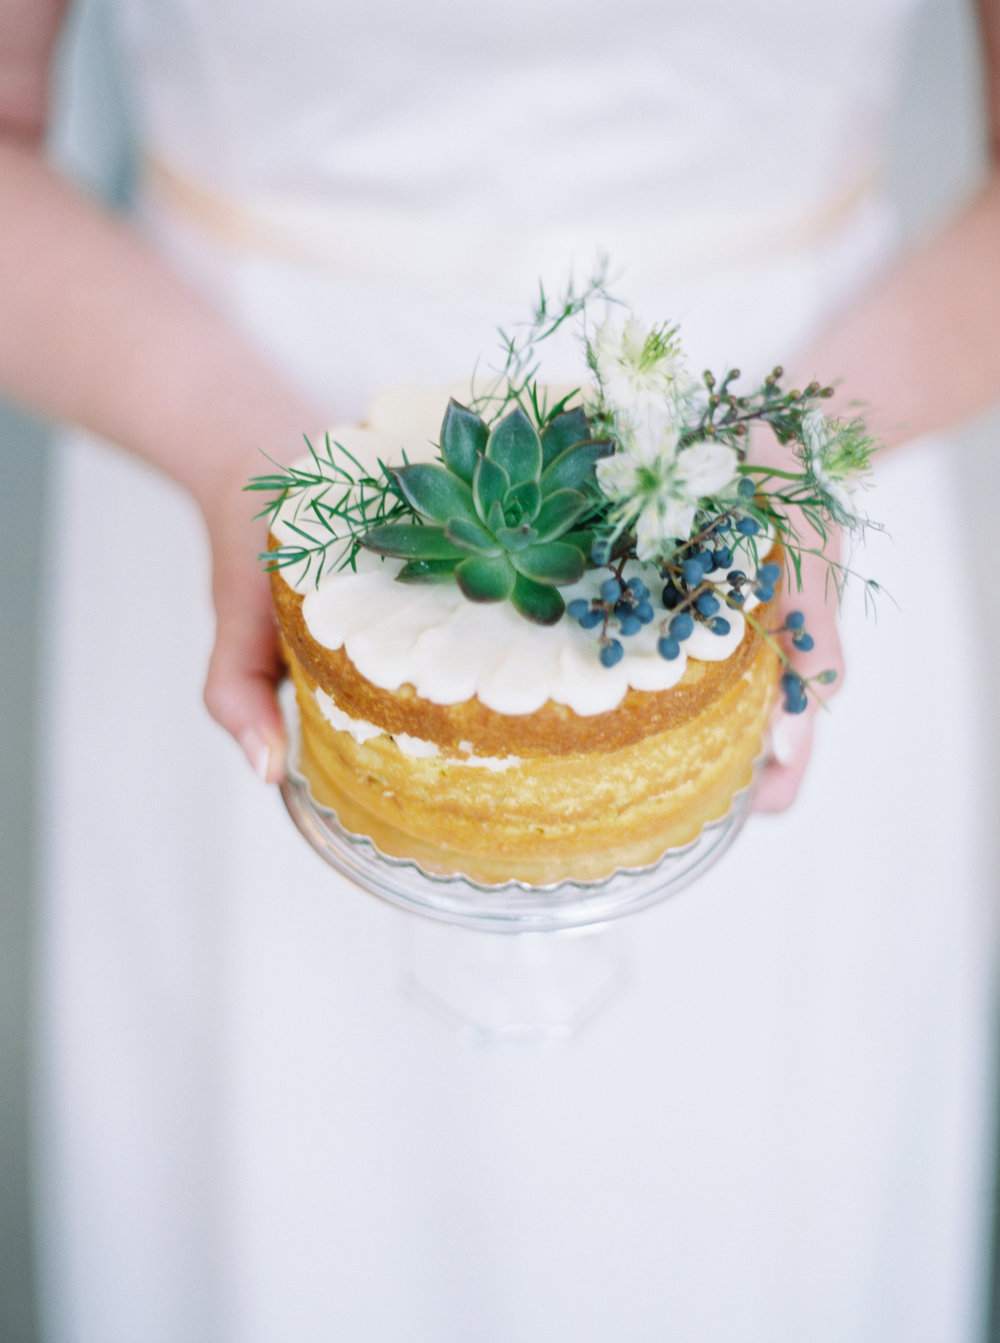 mini wedding cake with berries and succulents on top.JPG